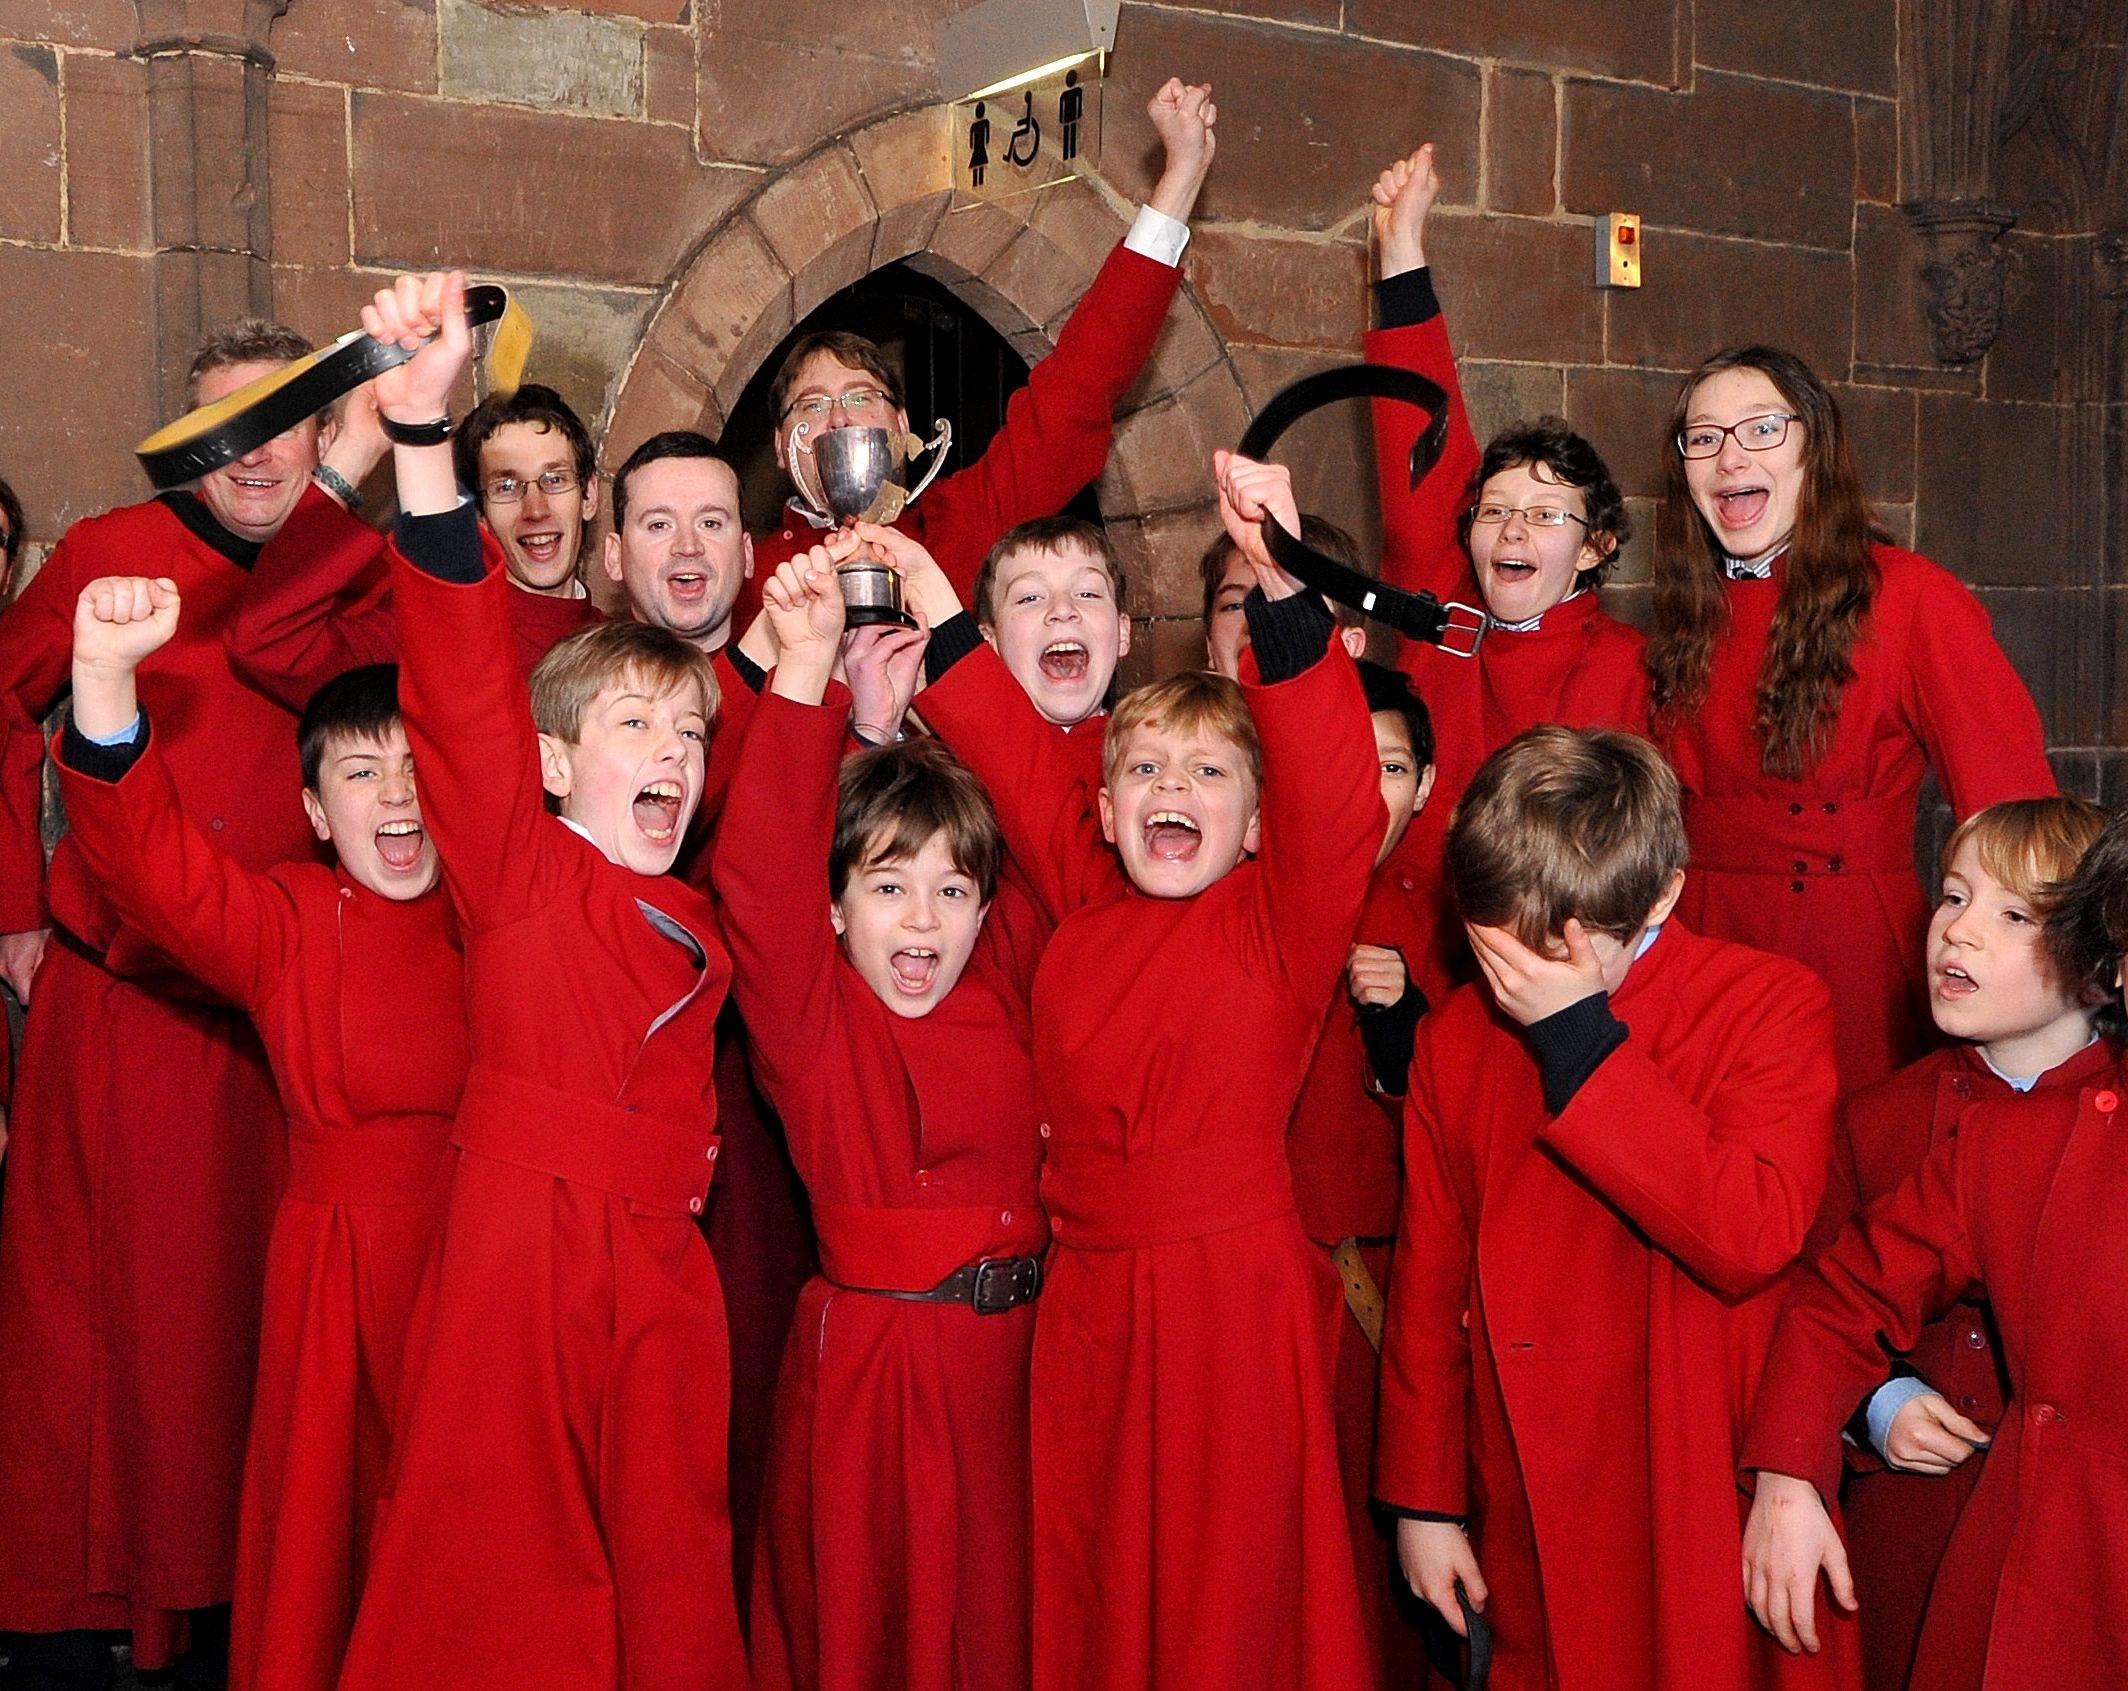 Choristers flip pancakes to celebrate Shrove Tuesday